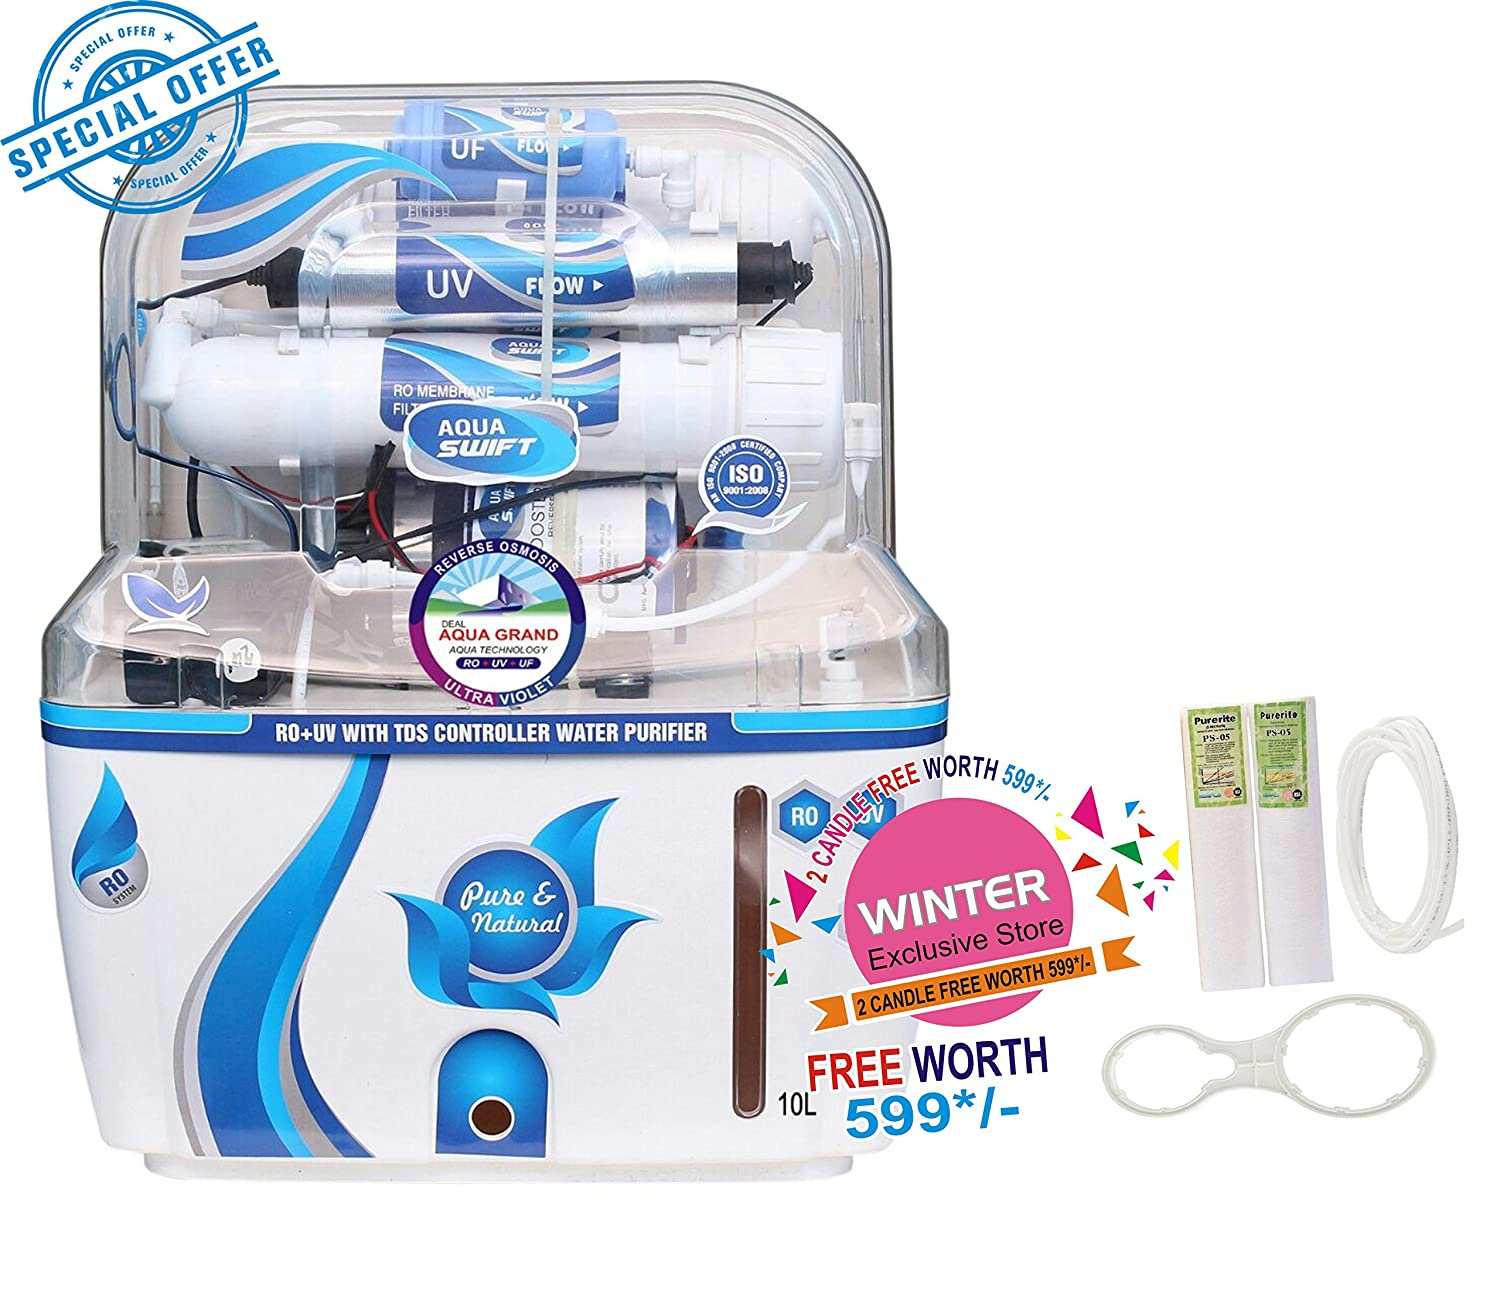 df367b6cee4 Deal Aquagrand Aqua Swift Ro+Uf+Uv+Mineral+Tds Controller 10 Ltr Rouvuf  Water Purifier 10 Stage  Amazon.in  Home   Kitchen